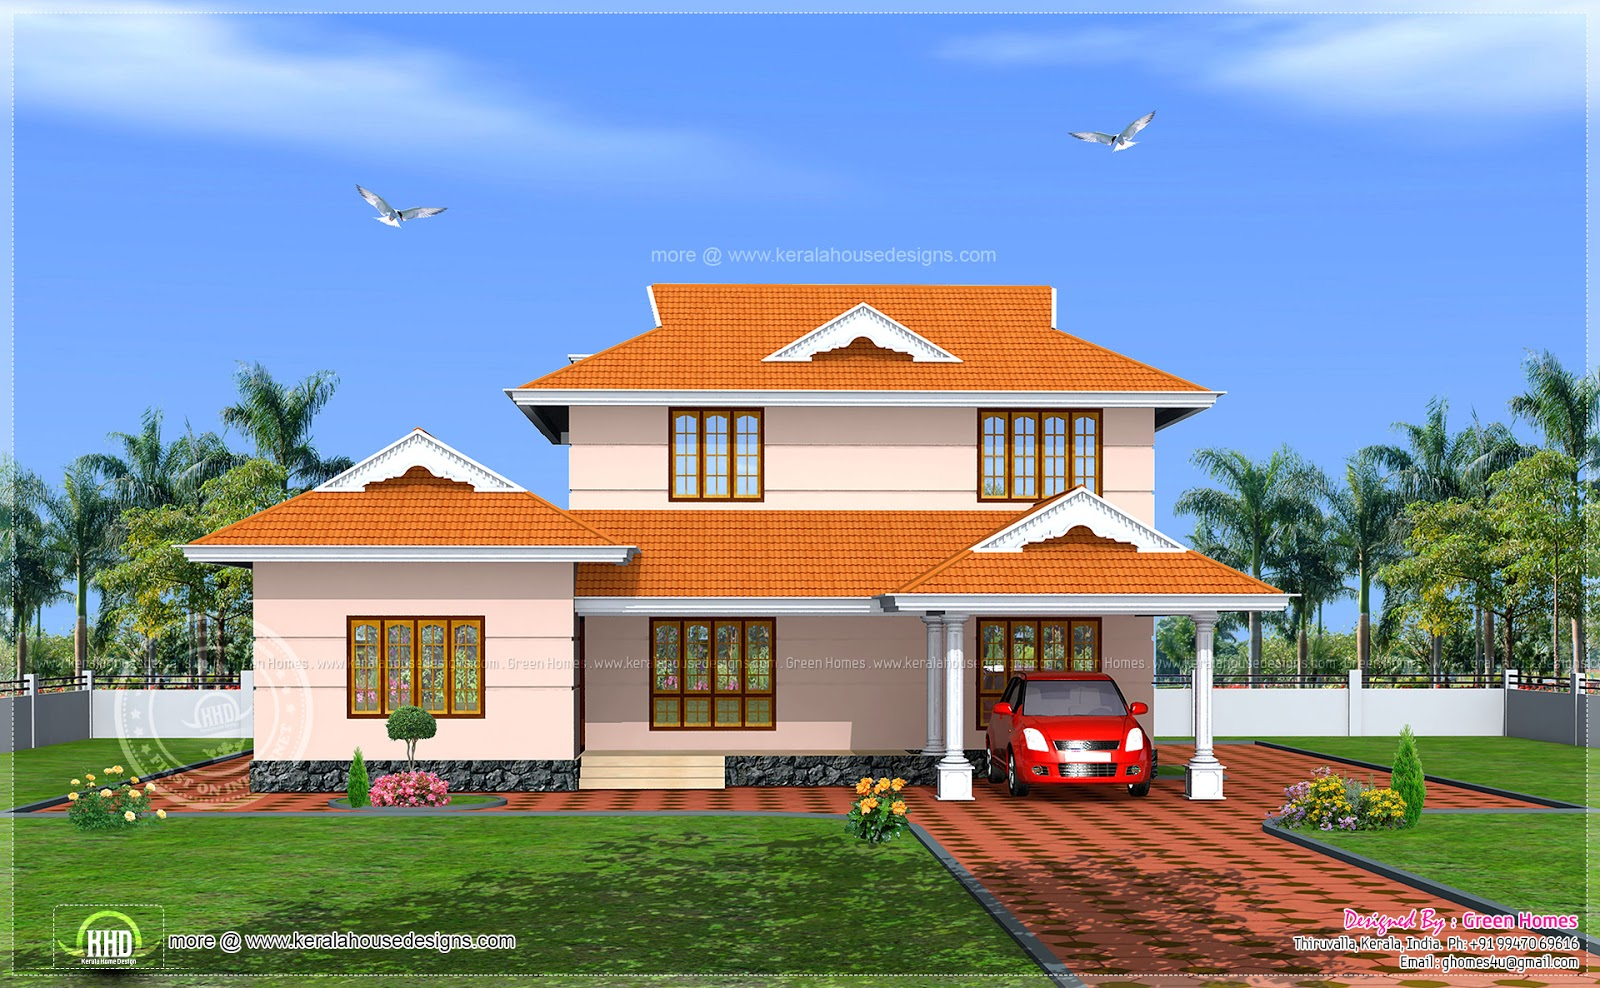 Home design kerala model house q for Model home plans